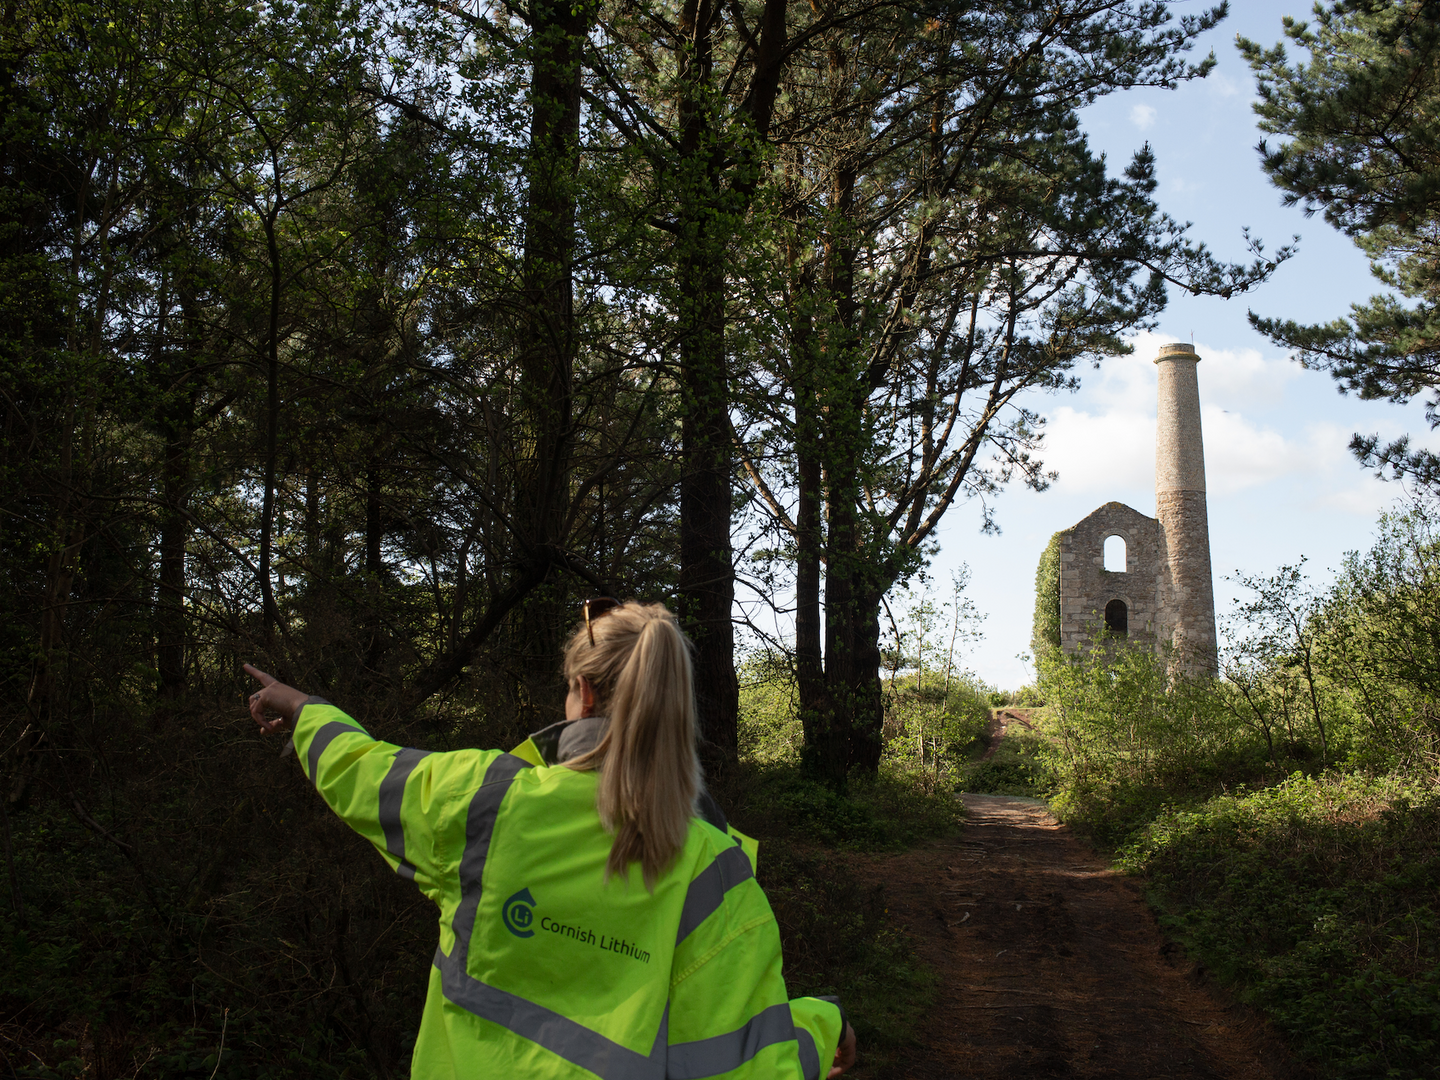 Cornish Lithium lead geologist Lucy Crane walks through a forest towards an old processing plant at ...